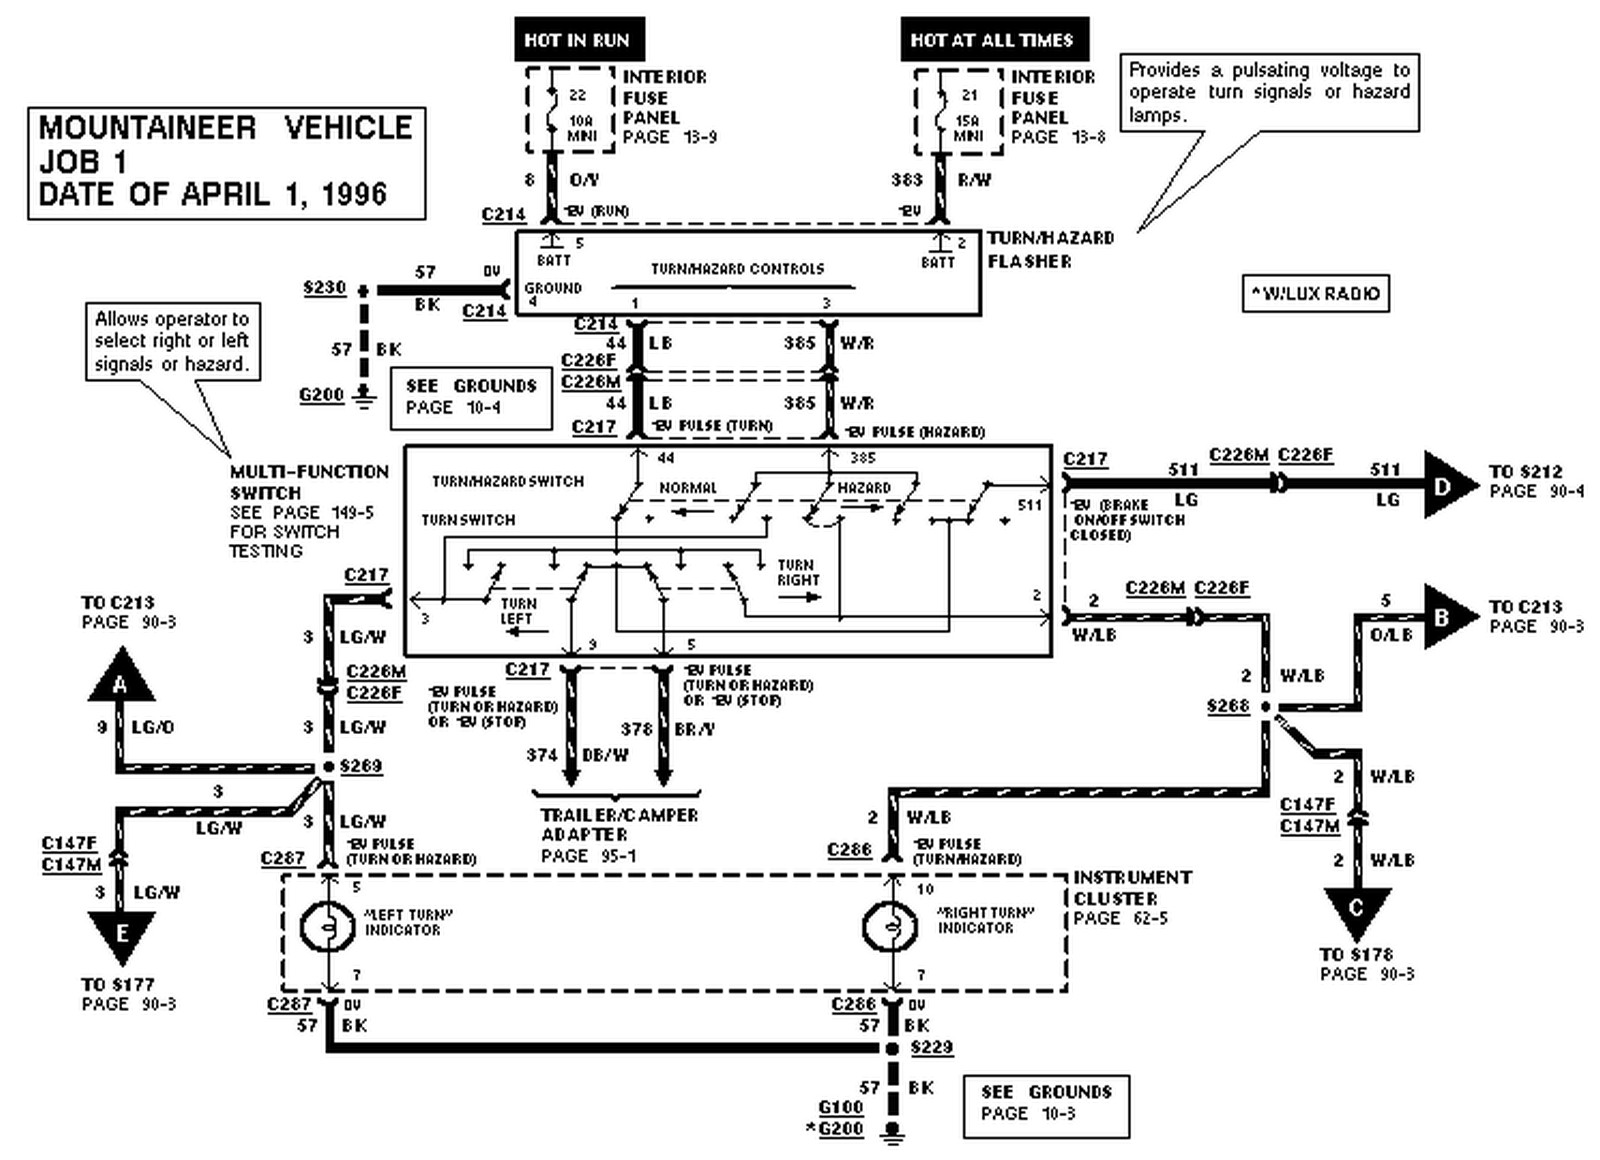 bodine emergency wiring diagram 2 ballast with 4 lamps